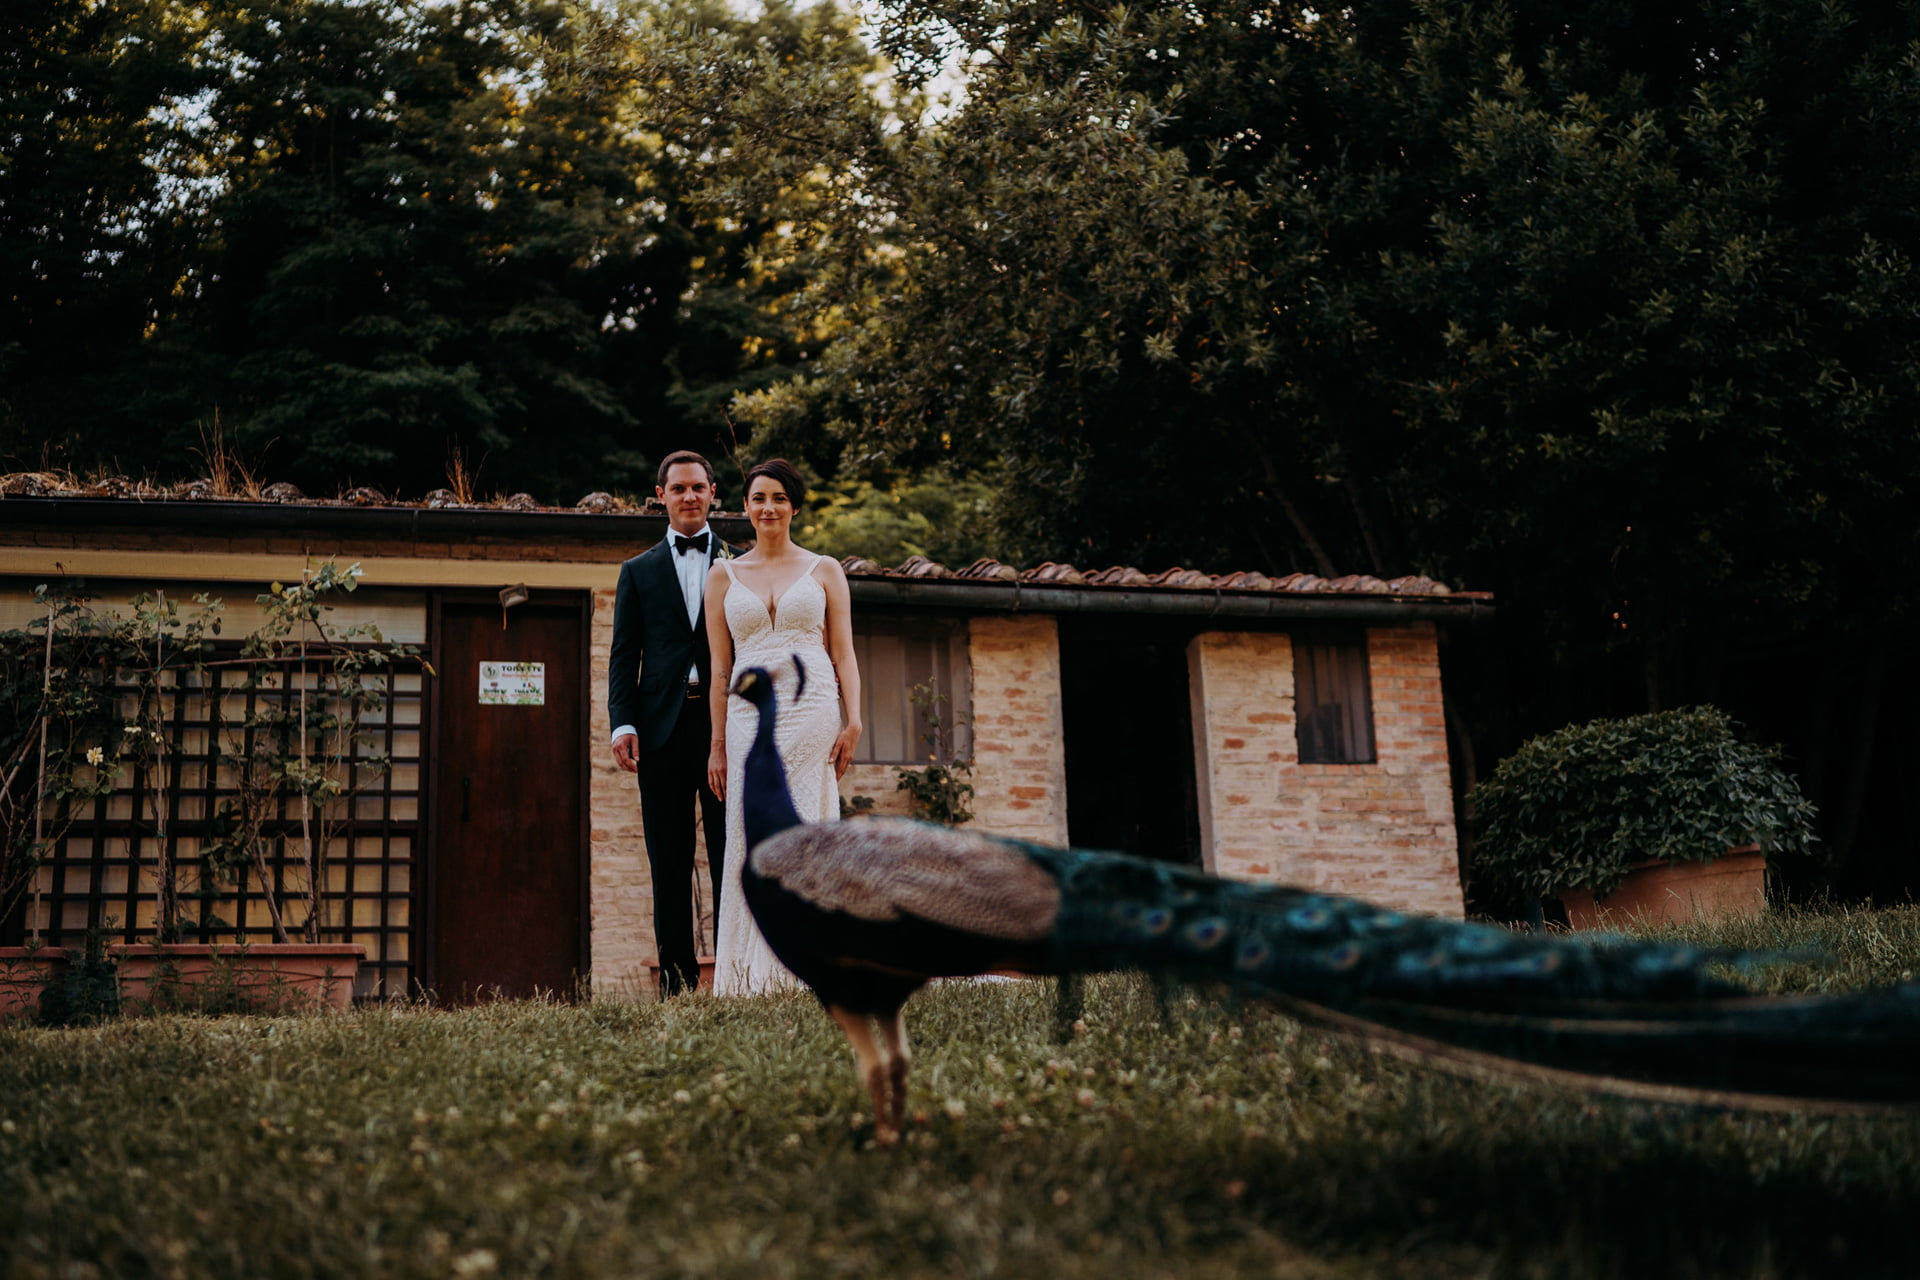 Destination Wedding Siena, Tuscany, Destination Wedding Siena, Tuscany | C+S, Federico Pannacci